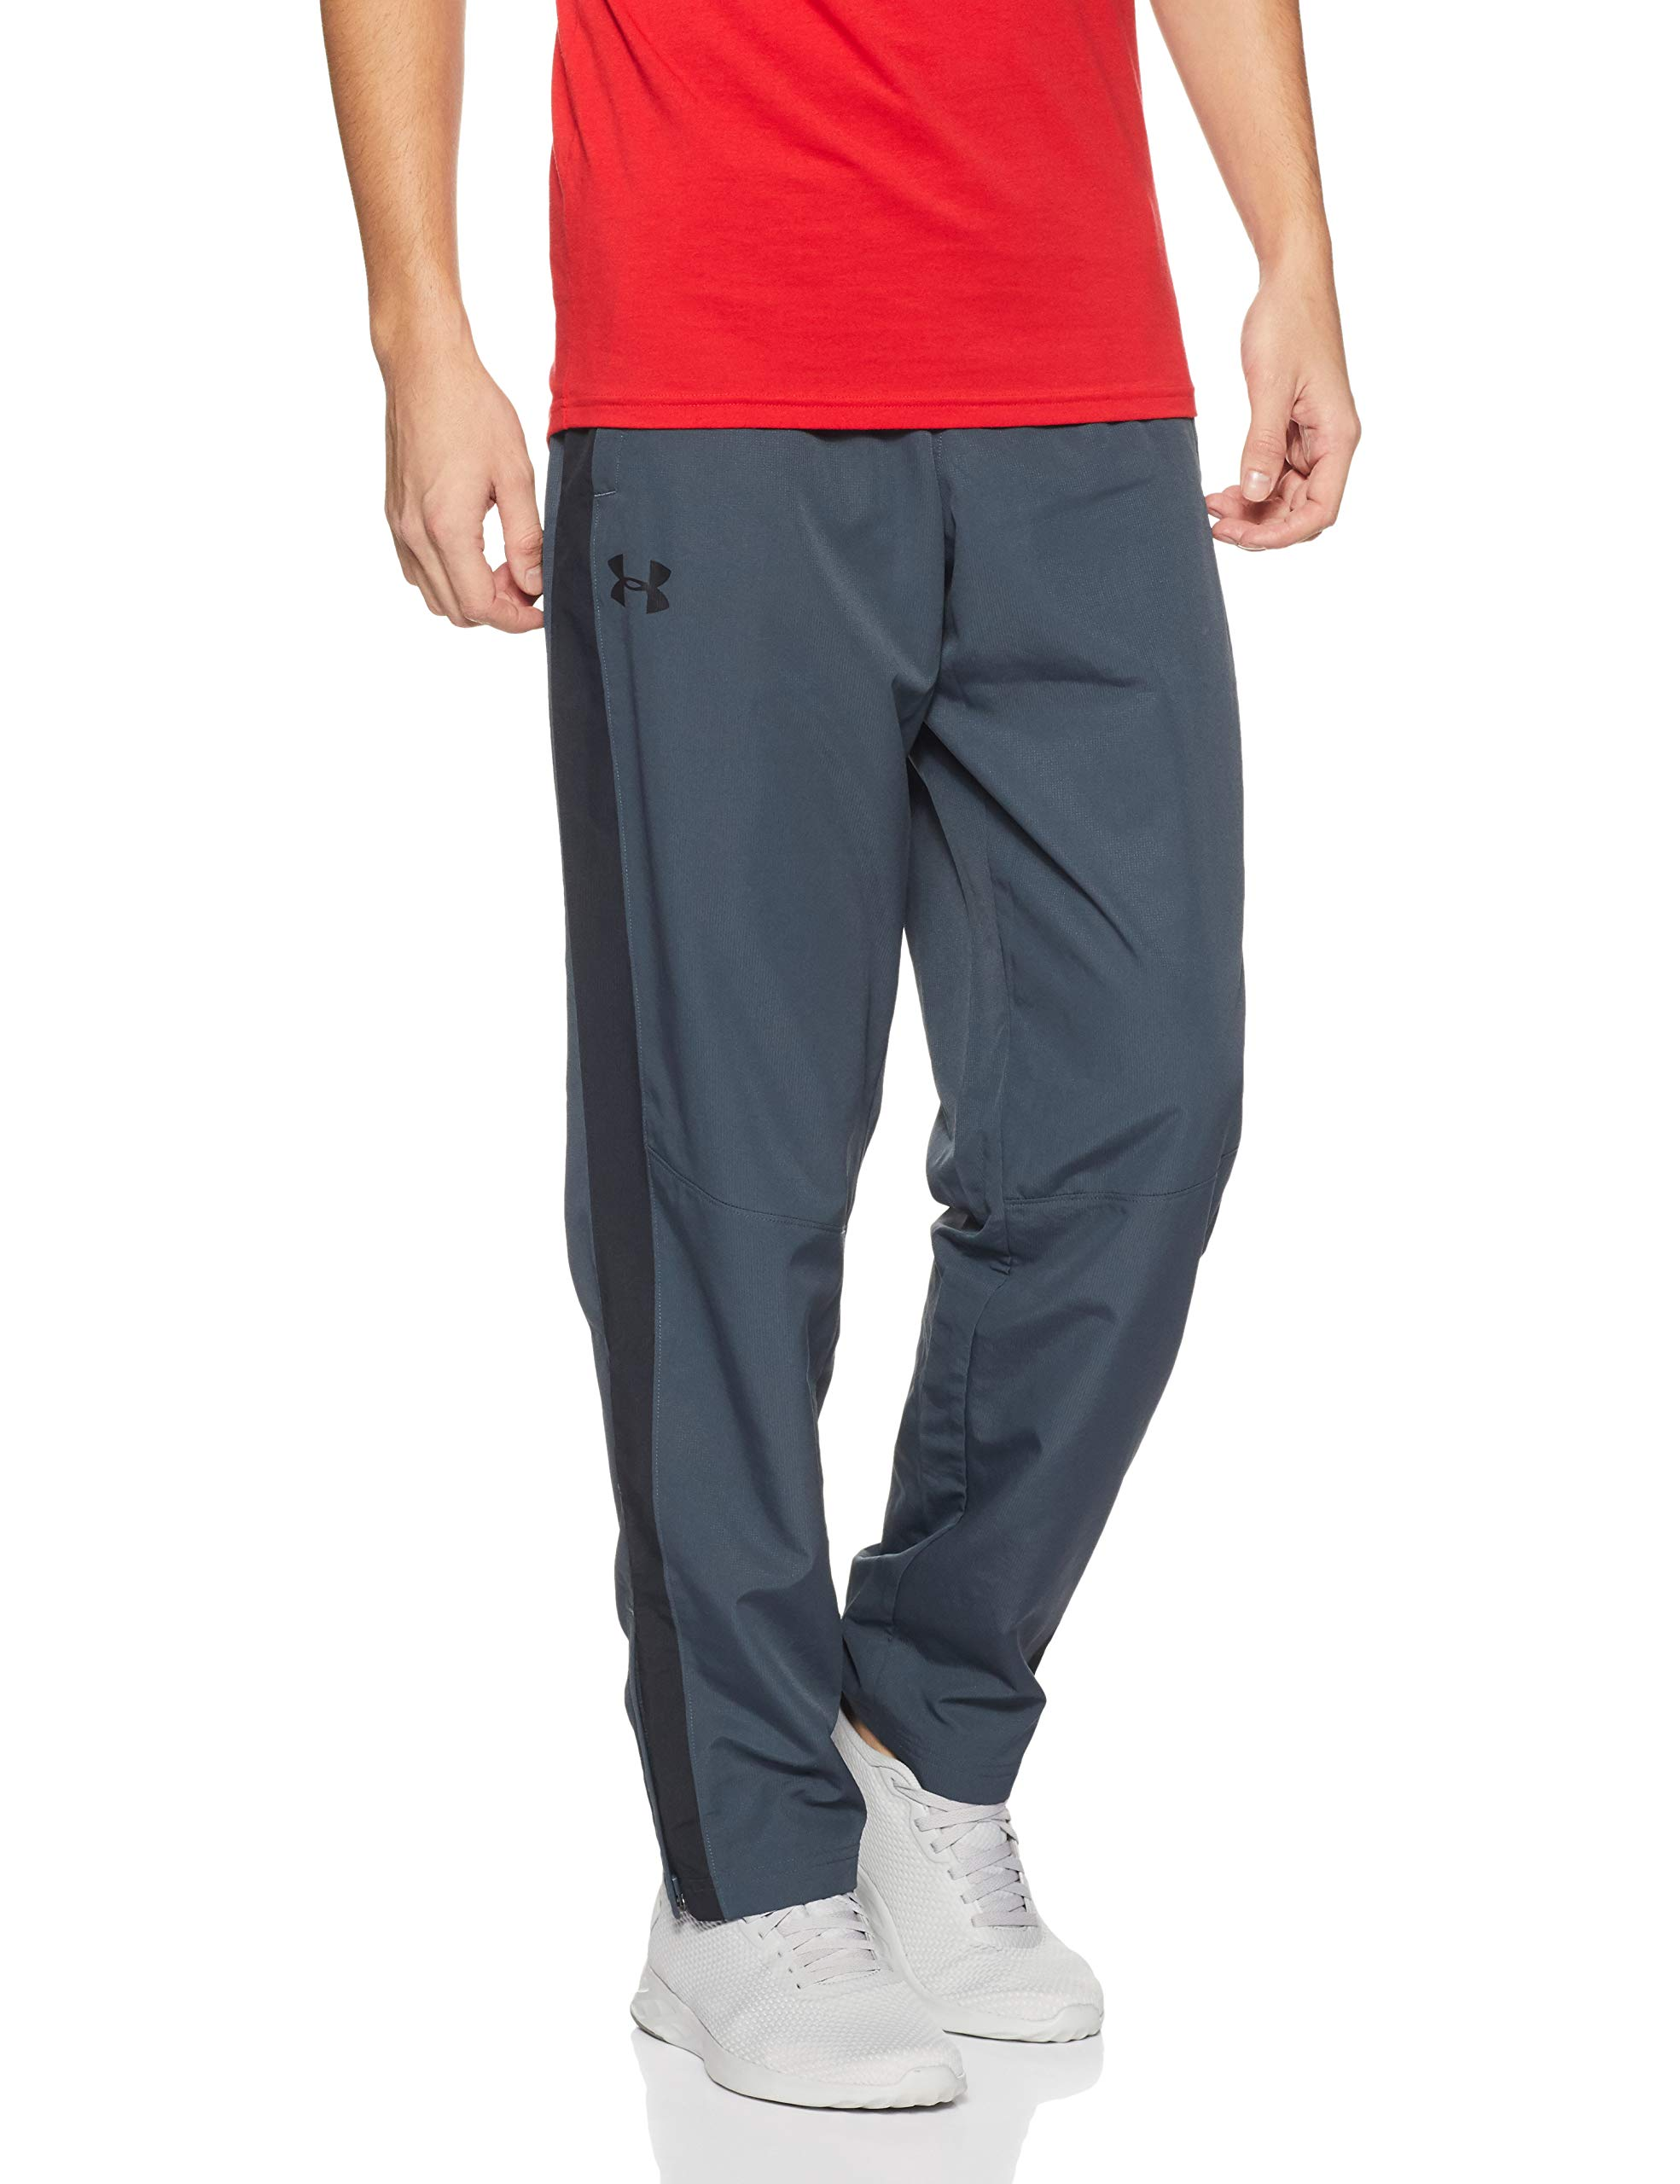 Under Armour Men's Sportstyle Woven Pants , Stealth Gray /Black, X-Large